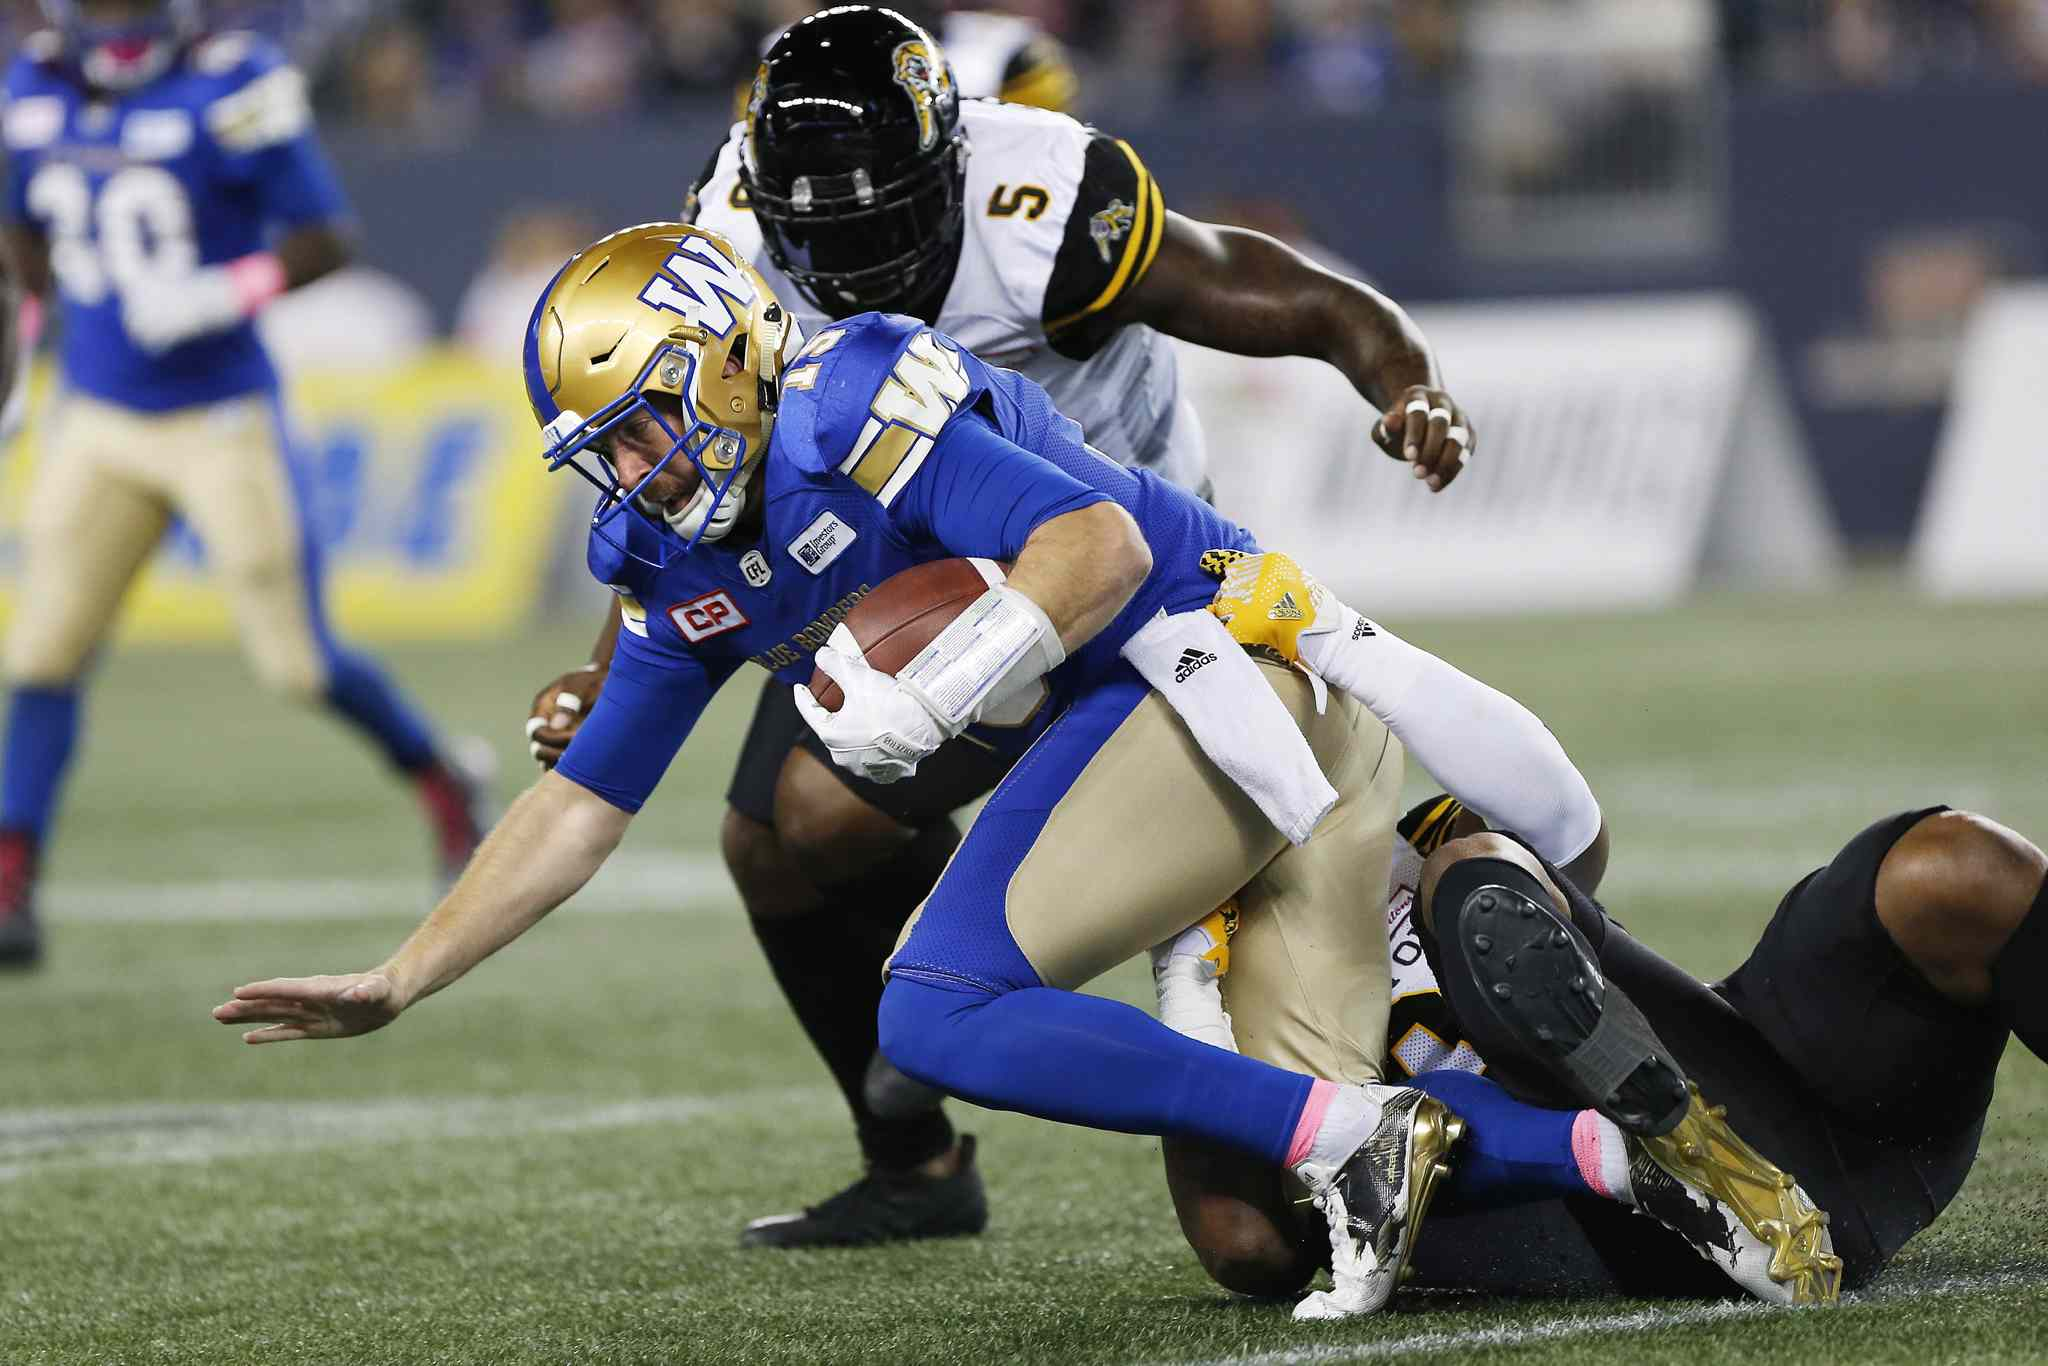 Nichols broke his finger during the Oct. 6 game against the Hamilton Tiger-Cats.